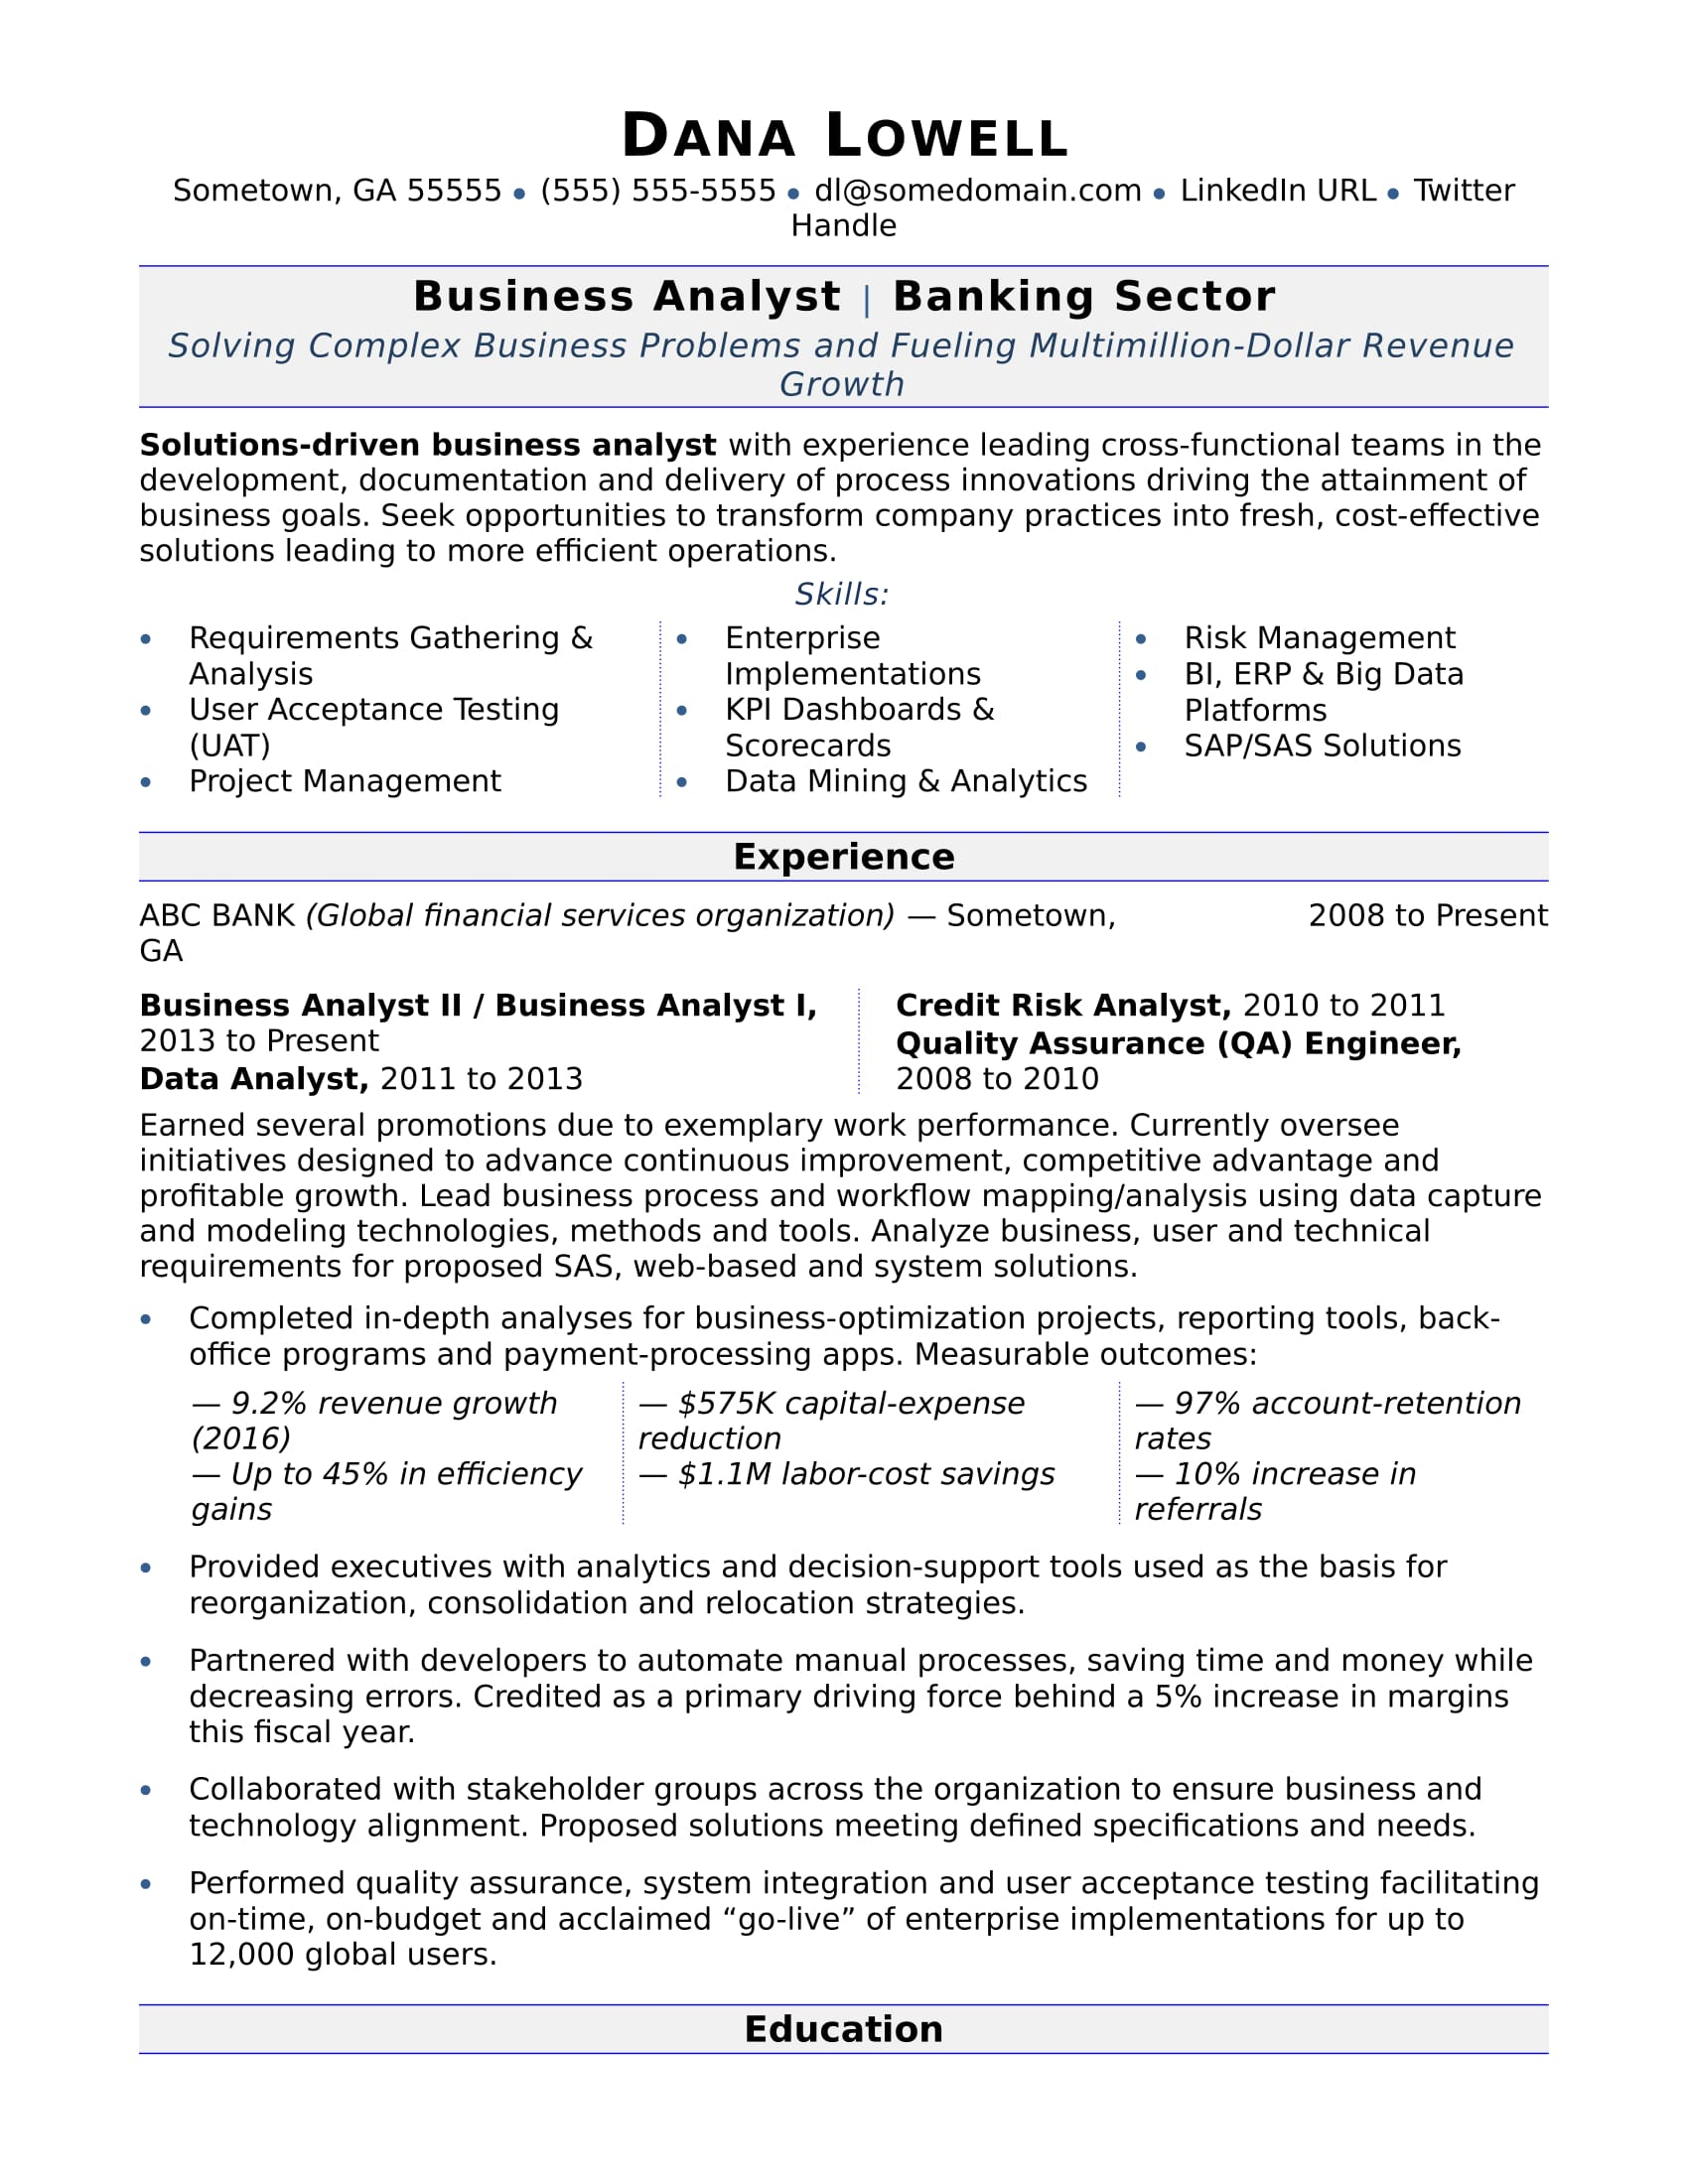 Posting Resume On Monster Business Analyst Resume Sample Monster